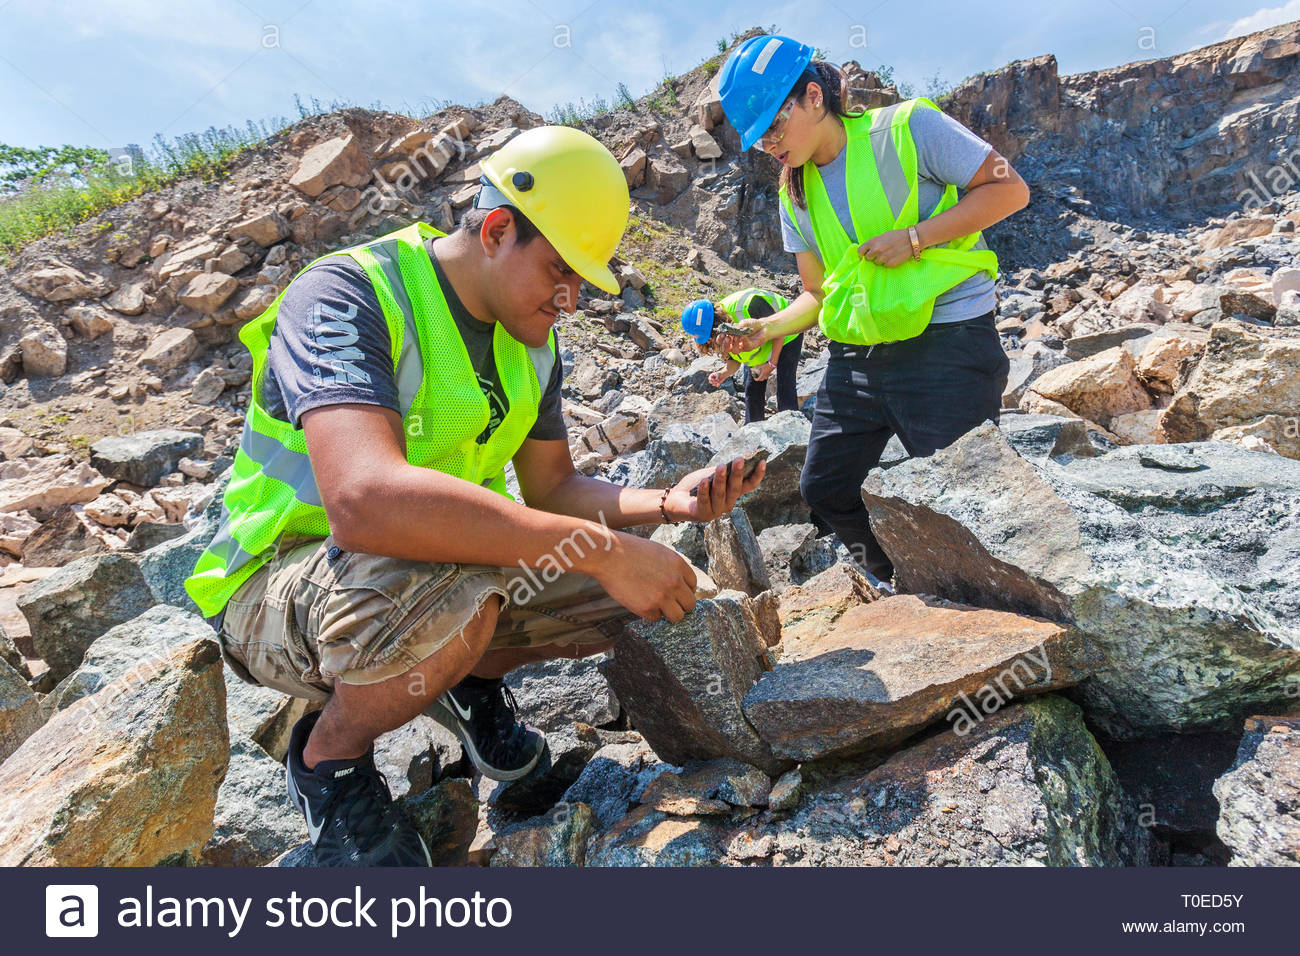 Geology and Earth science students study rocks and minerals in a quarry. - Stock Image